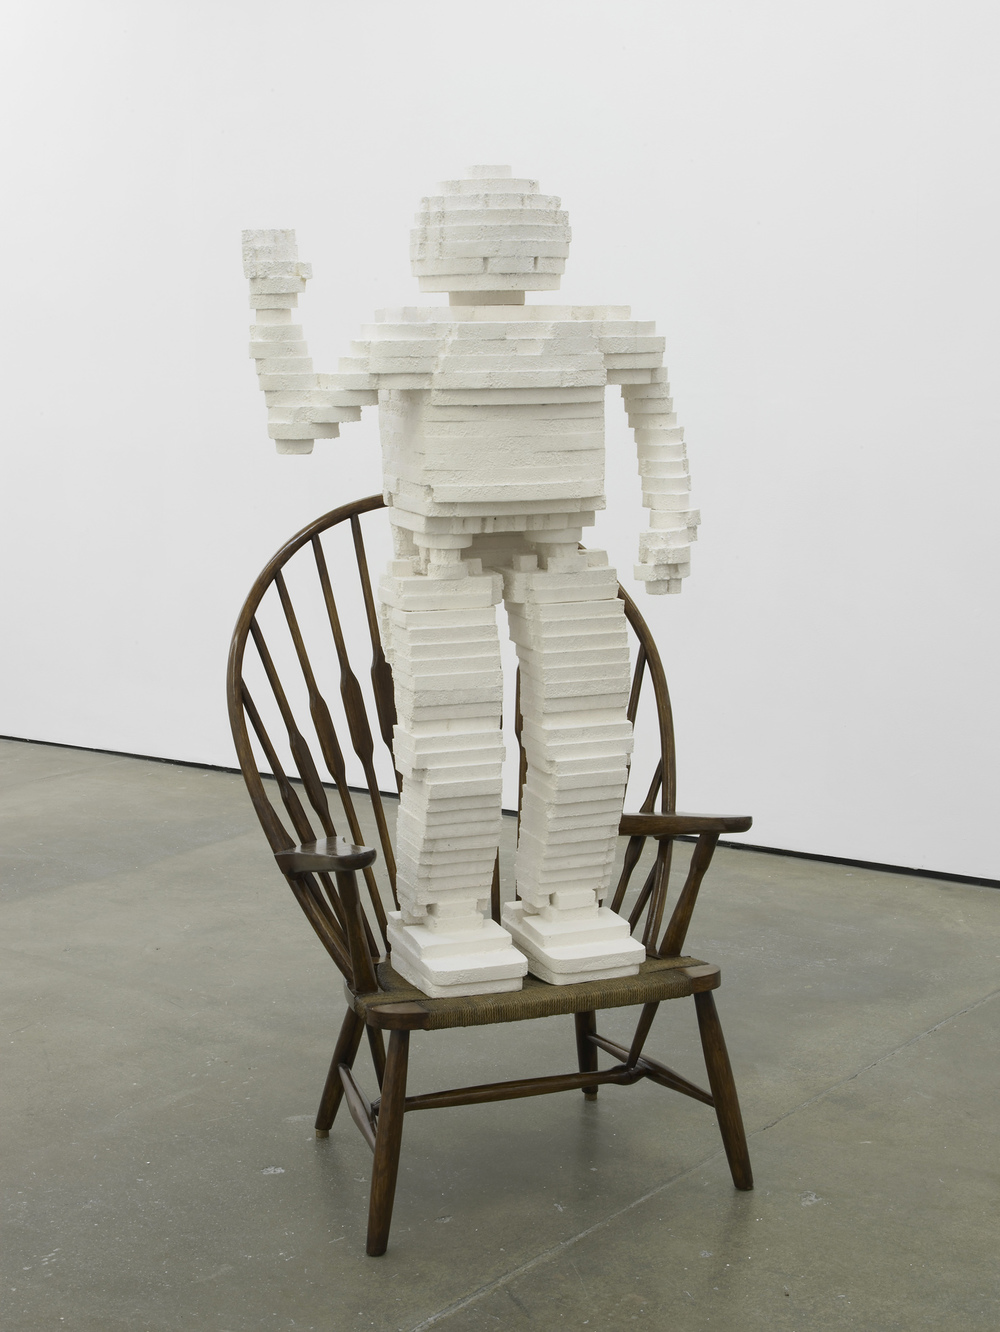 Asimo Robot  2014  Plaster and 20th century Windsor chair  164 x 85 x 50 cm / 64.5 x 33.4 x 19.6 in